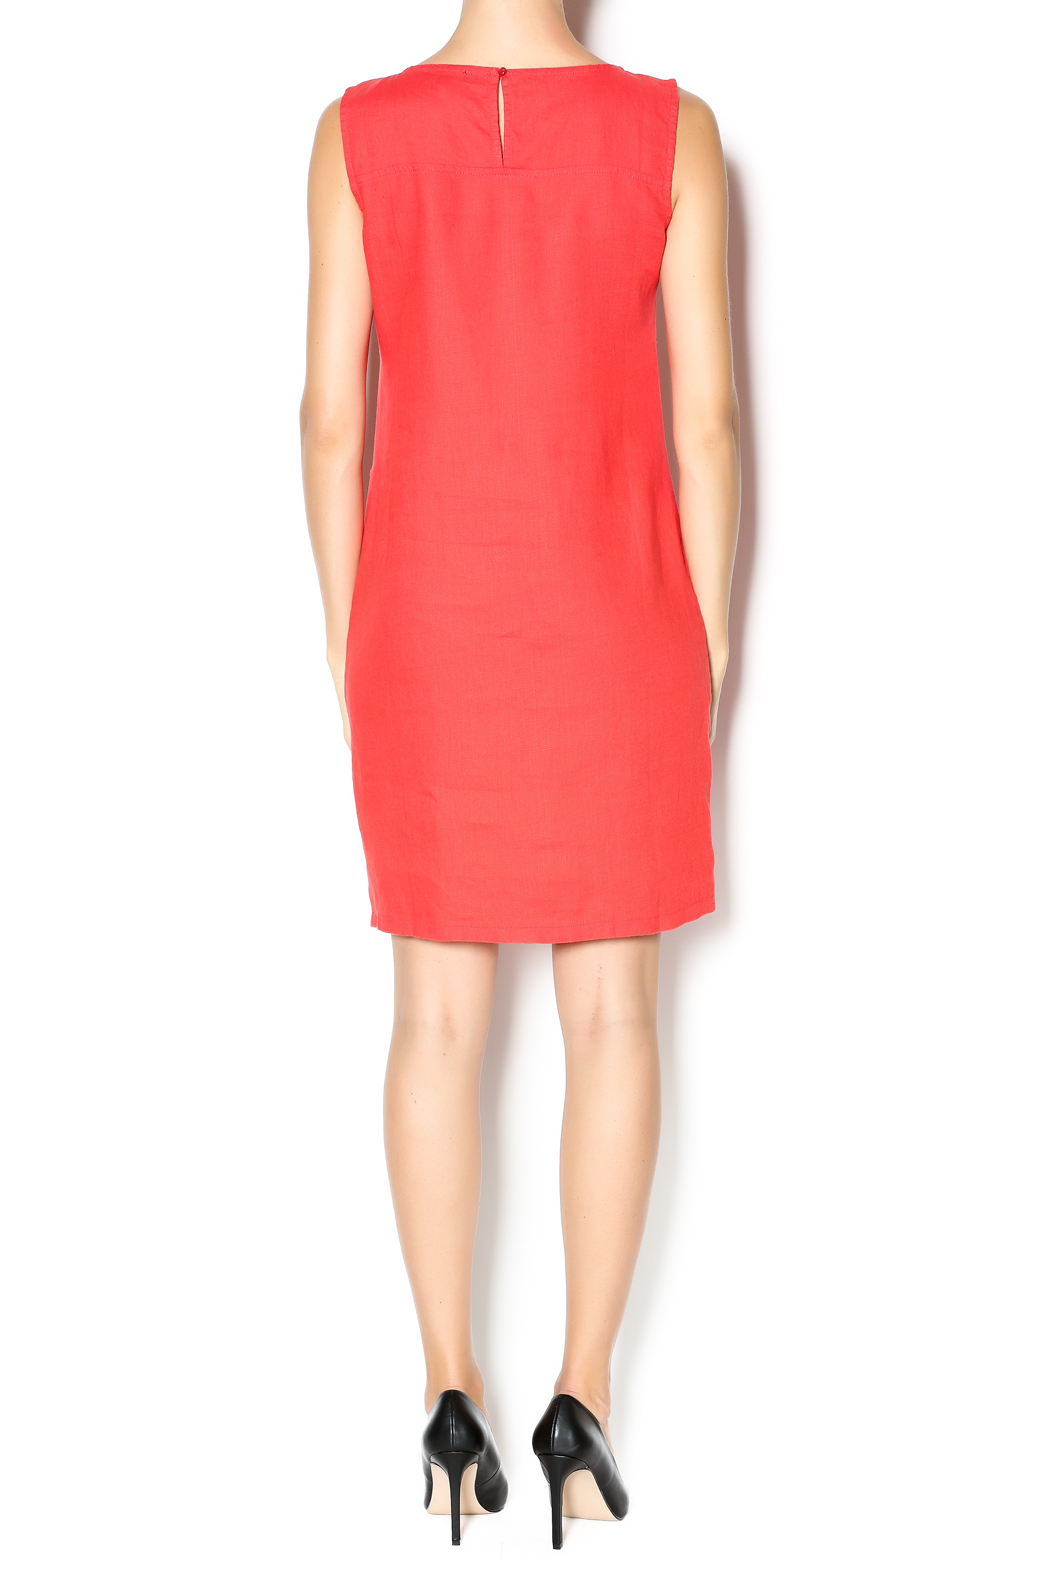 Yest Red Linen Dress from Maine by Bella Fiore — Shoptiques